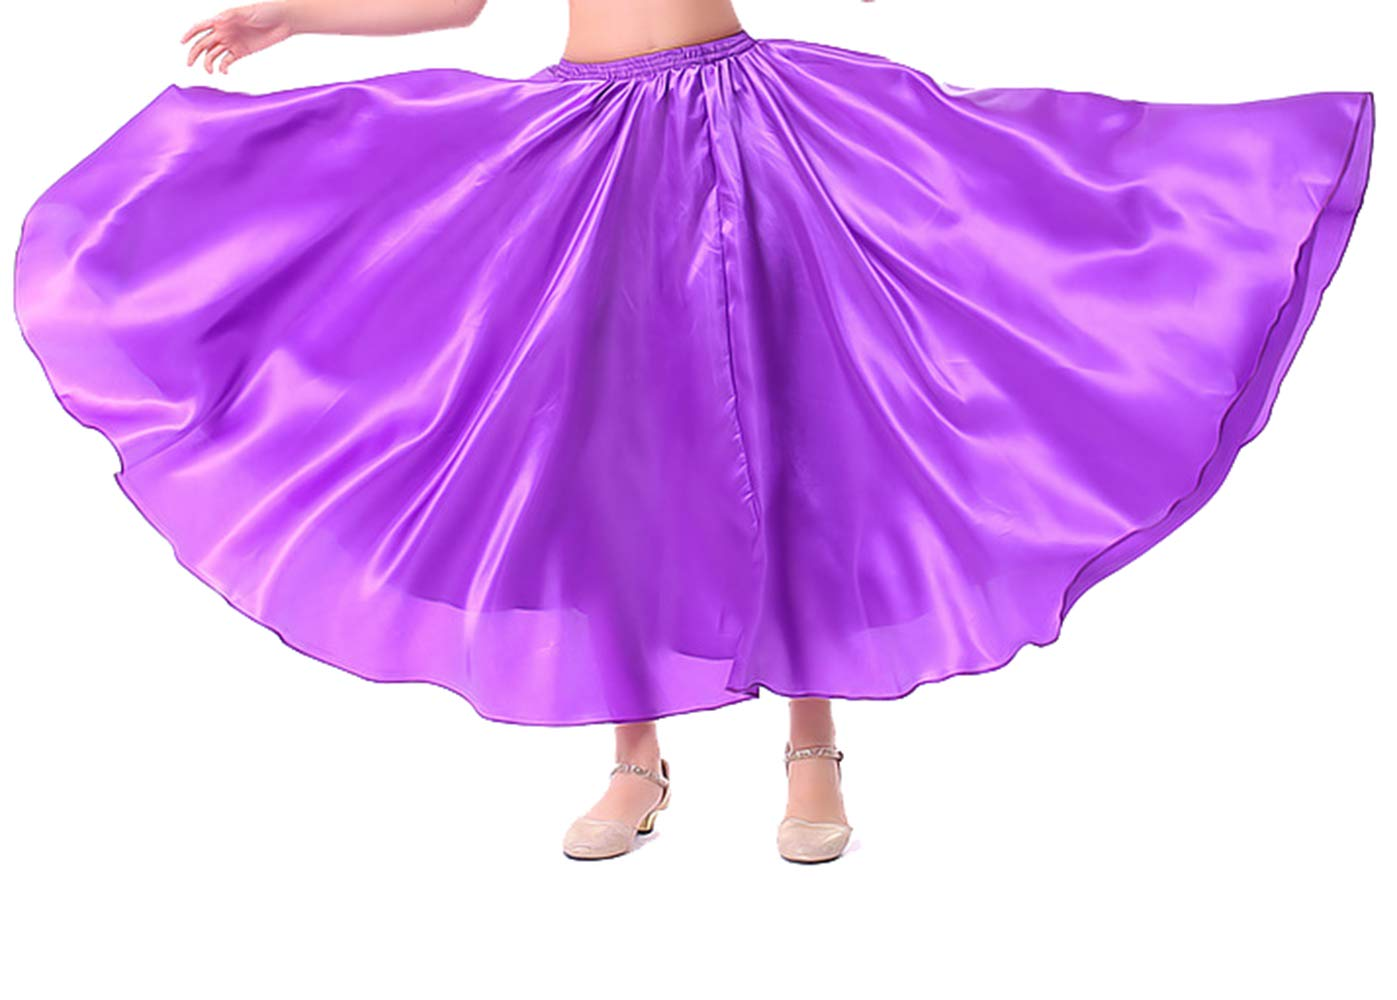 Lauthen.S Kids Gilrs Skirt for Belly Dance/Performance/Halloween Party, Satin Full Circle Tribal Skirt(Purple,M) by Lauthen.S